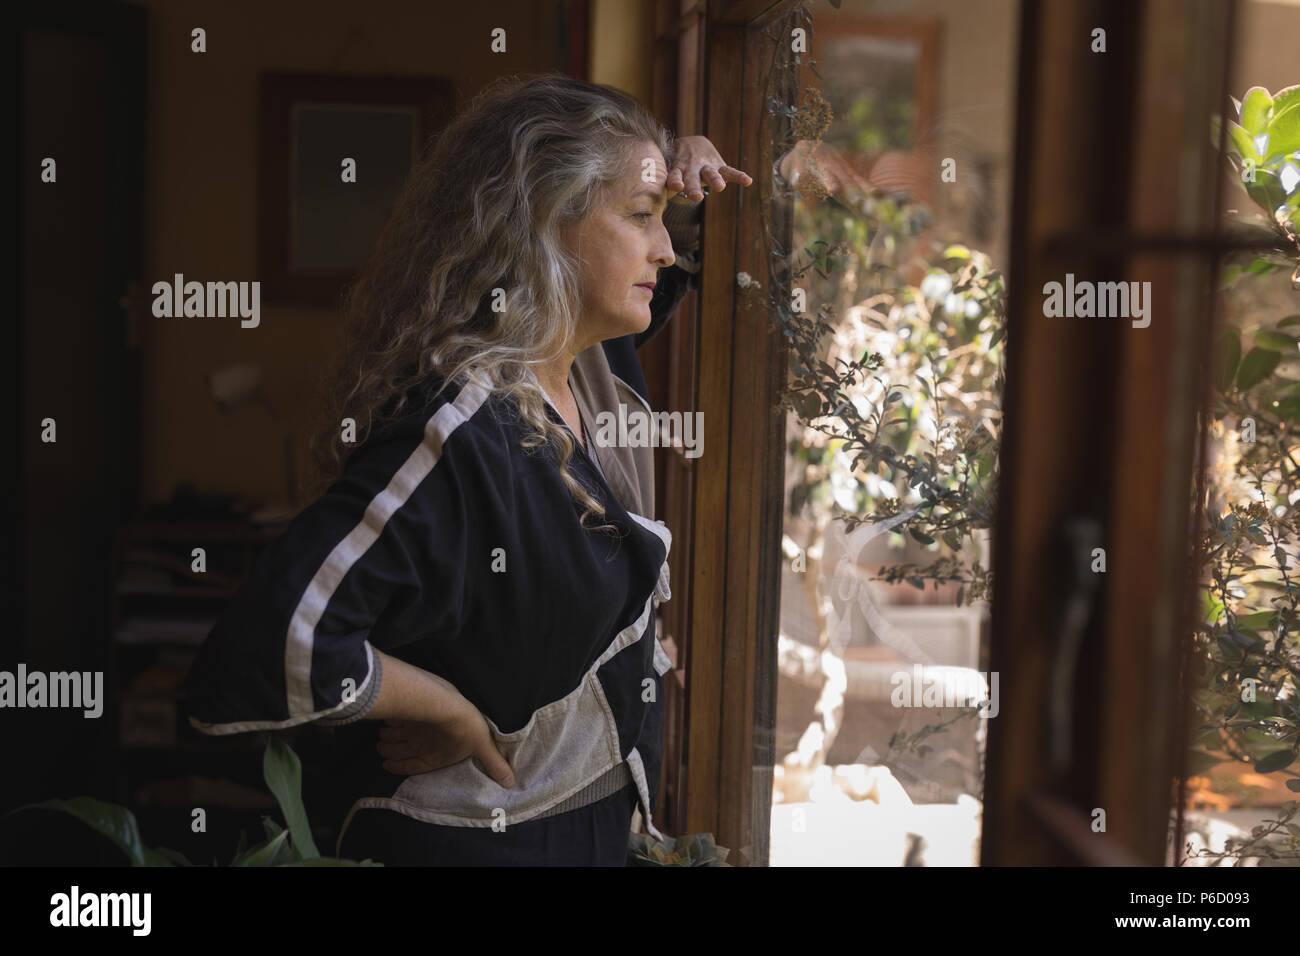 Thoughtful mature woman looking through window - Stock Image